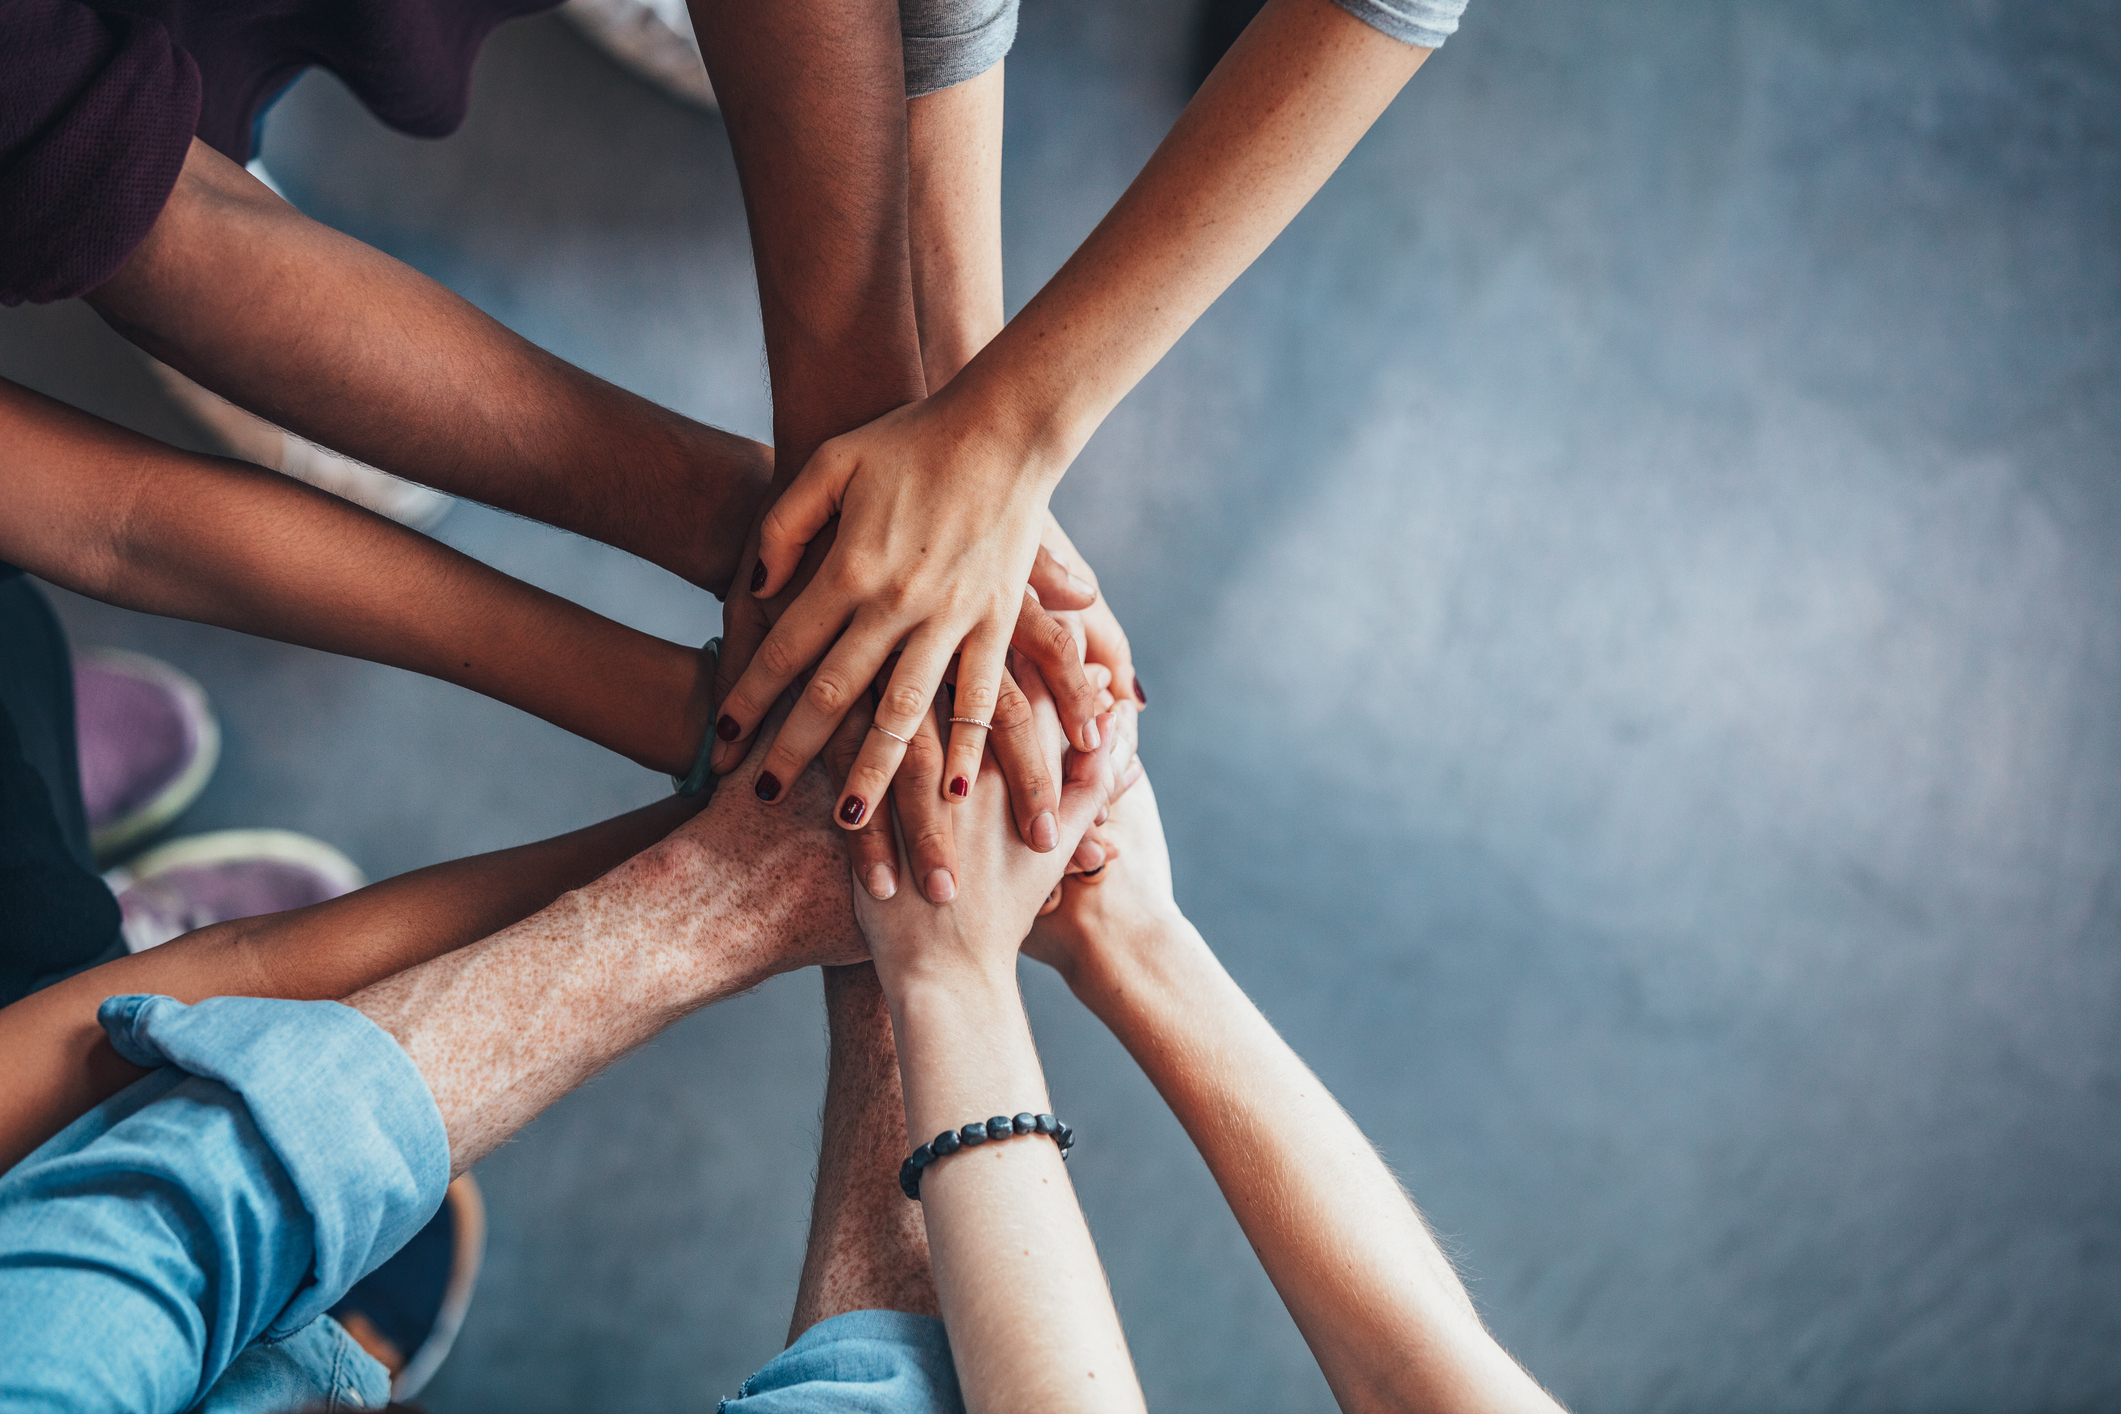 Create a thriving, supportive, harassment-free workplace, where everyone can bring their best selves. - Let's connect.